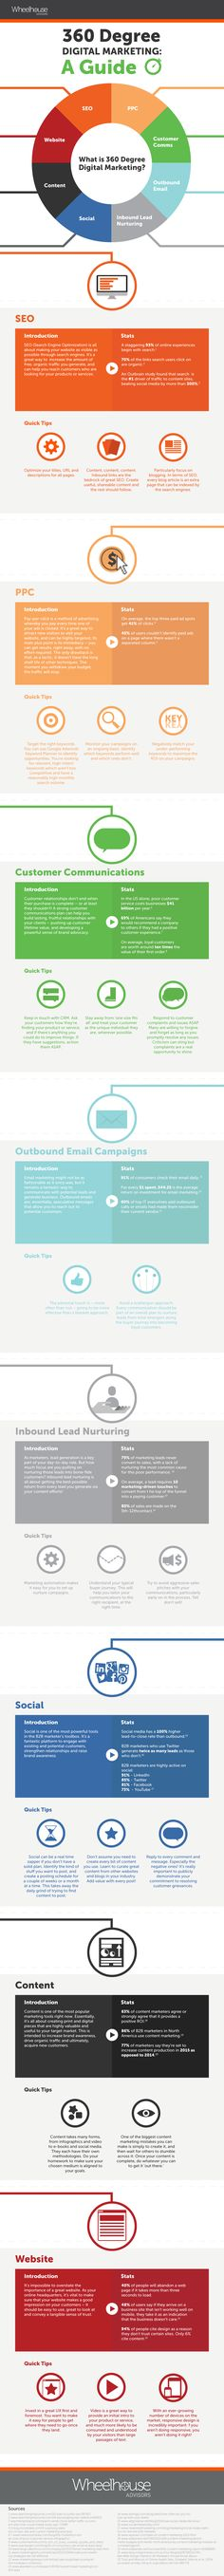 Developing A 360-Degree Digital Marketing Strategy - infographic